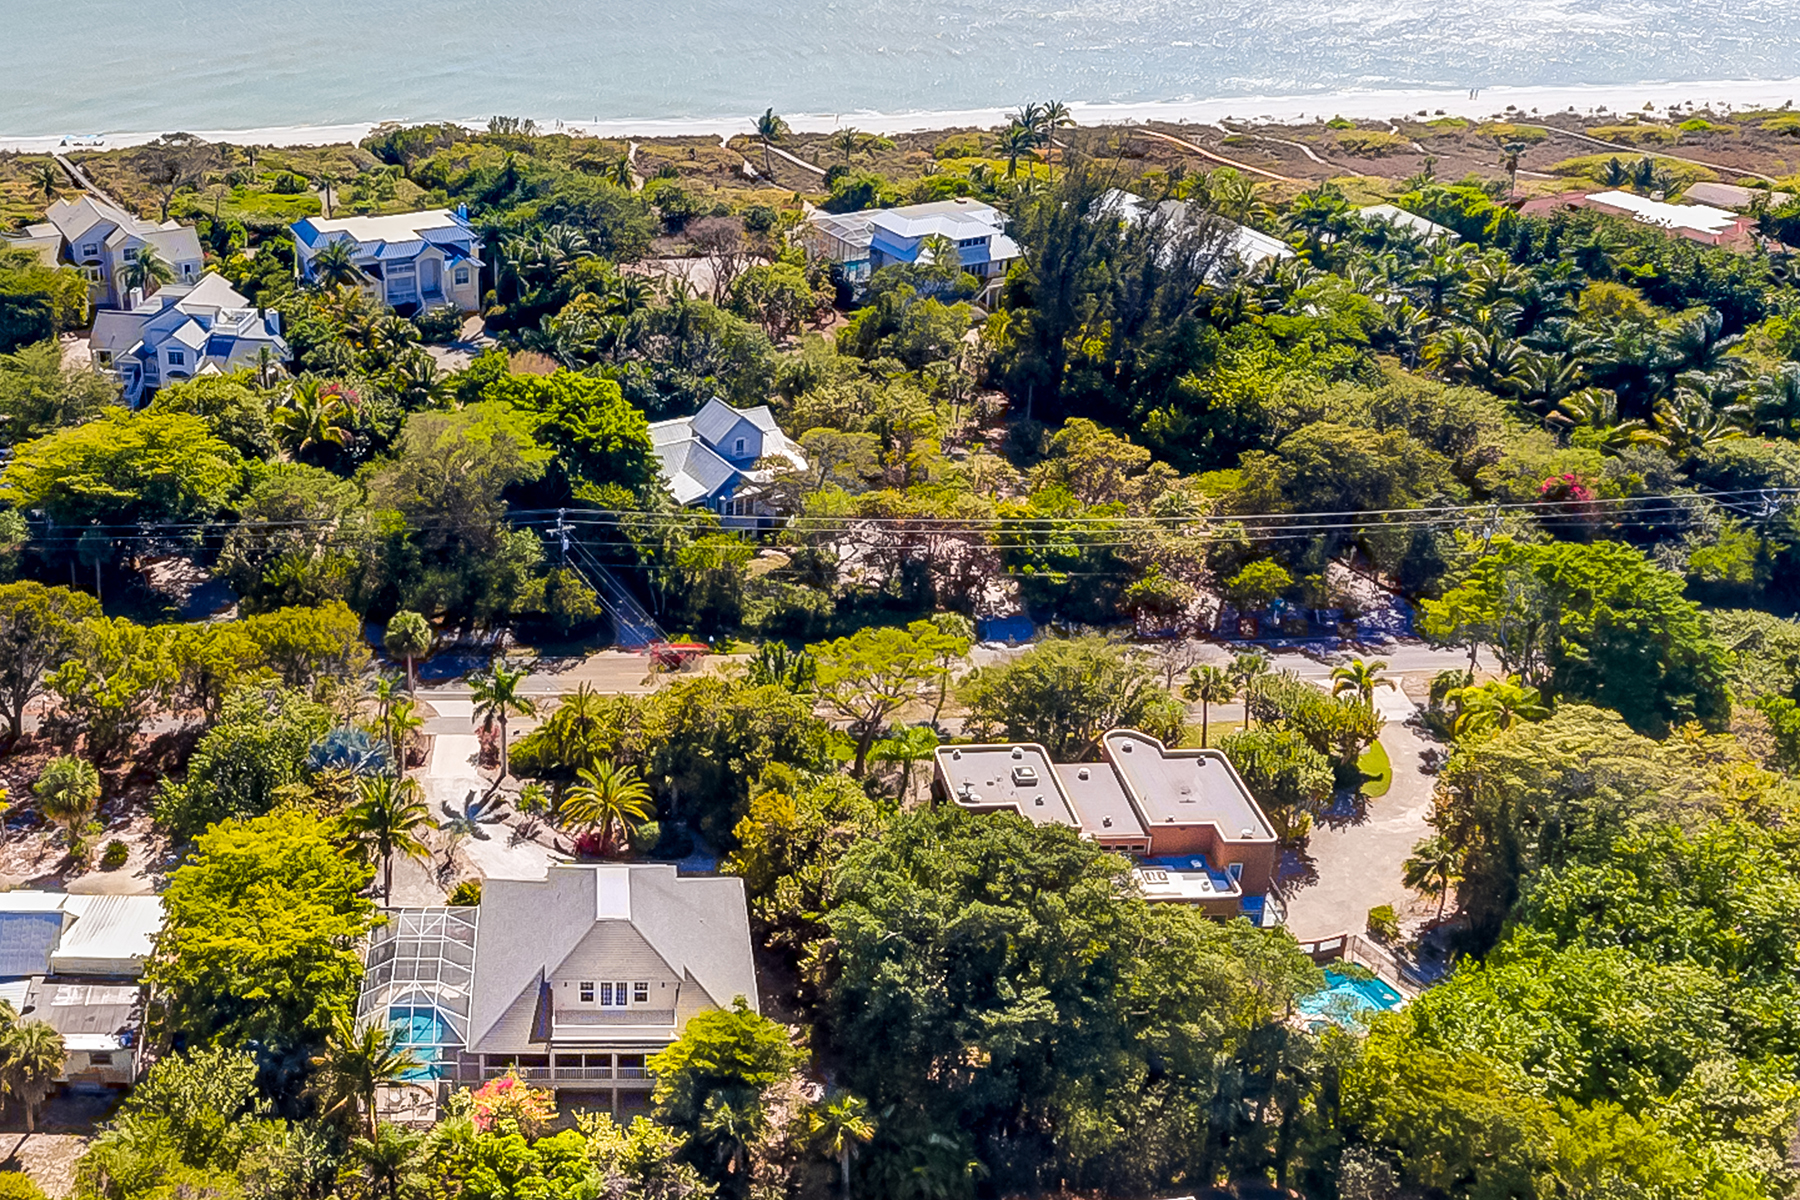 Single Family Home for Sale at SANIBEL 3386 W Gulf Dr Sanibel, Florida, 33957 United States